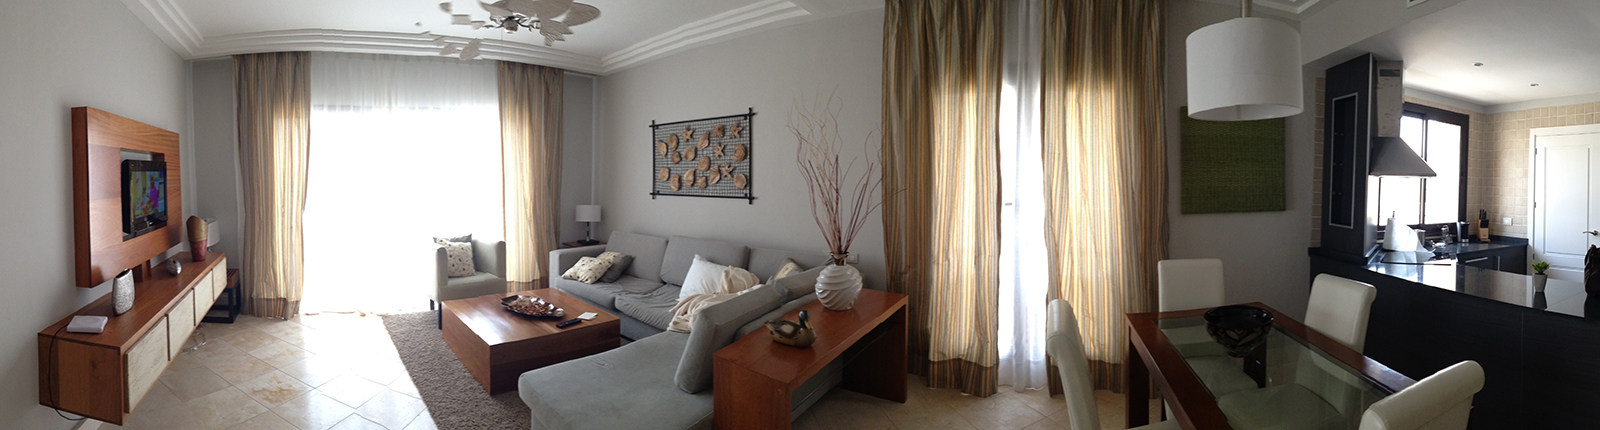 alsol-luxury-village-living-room